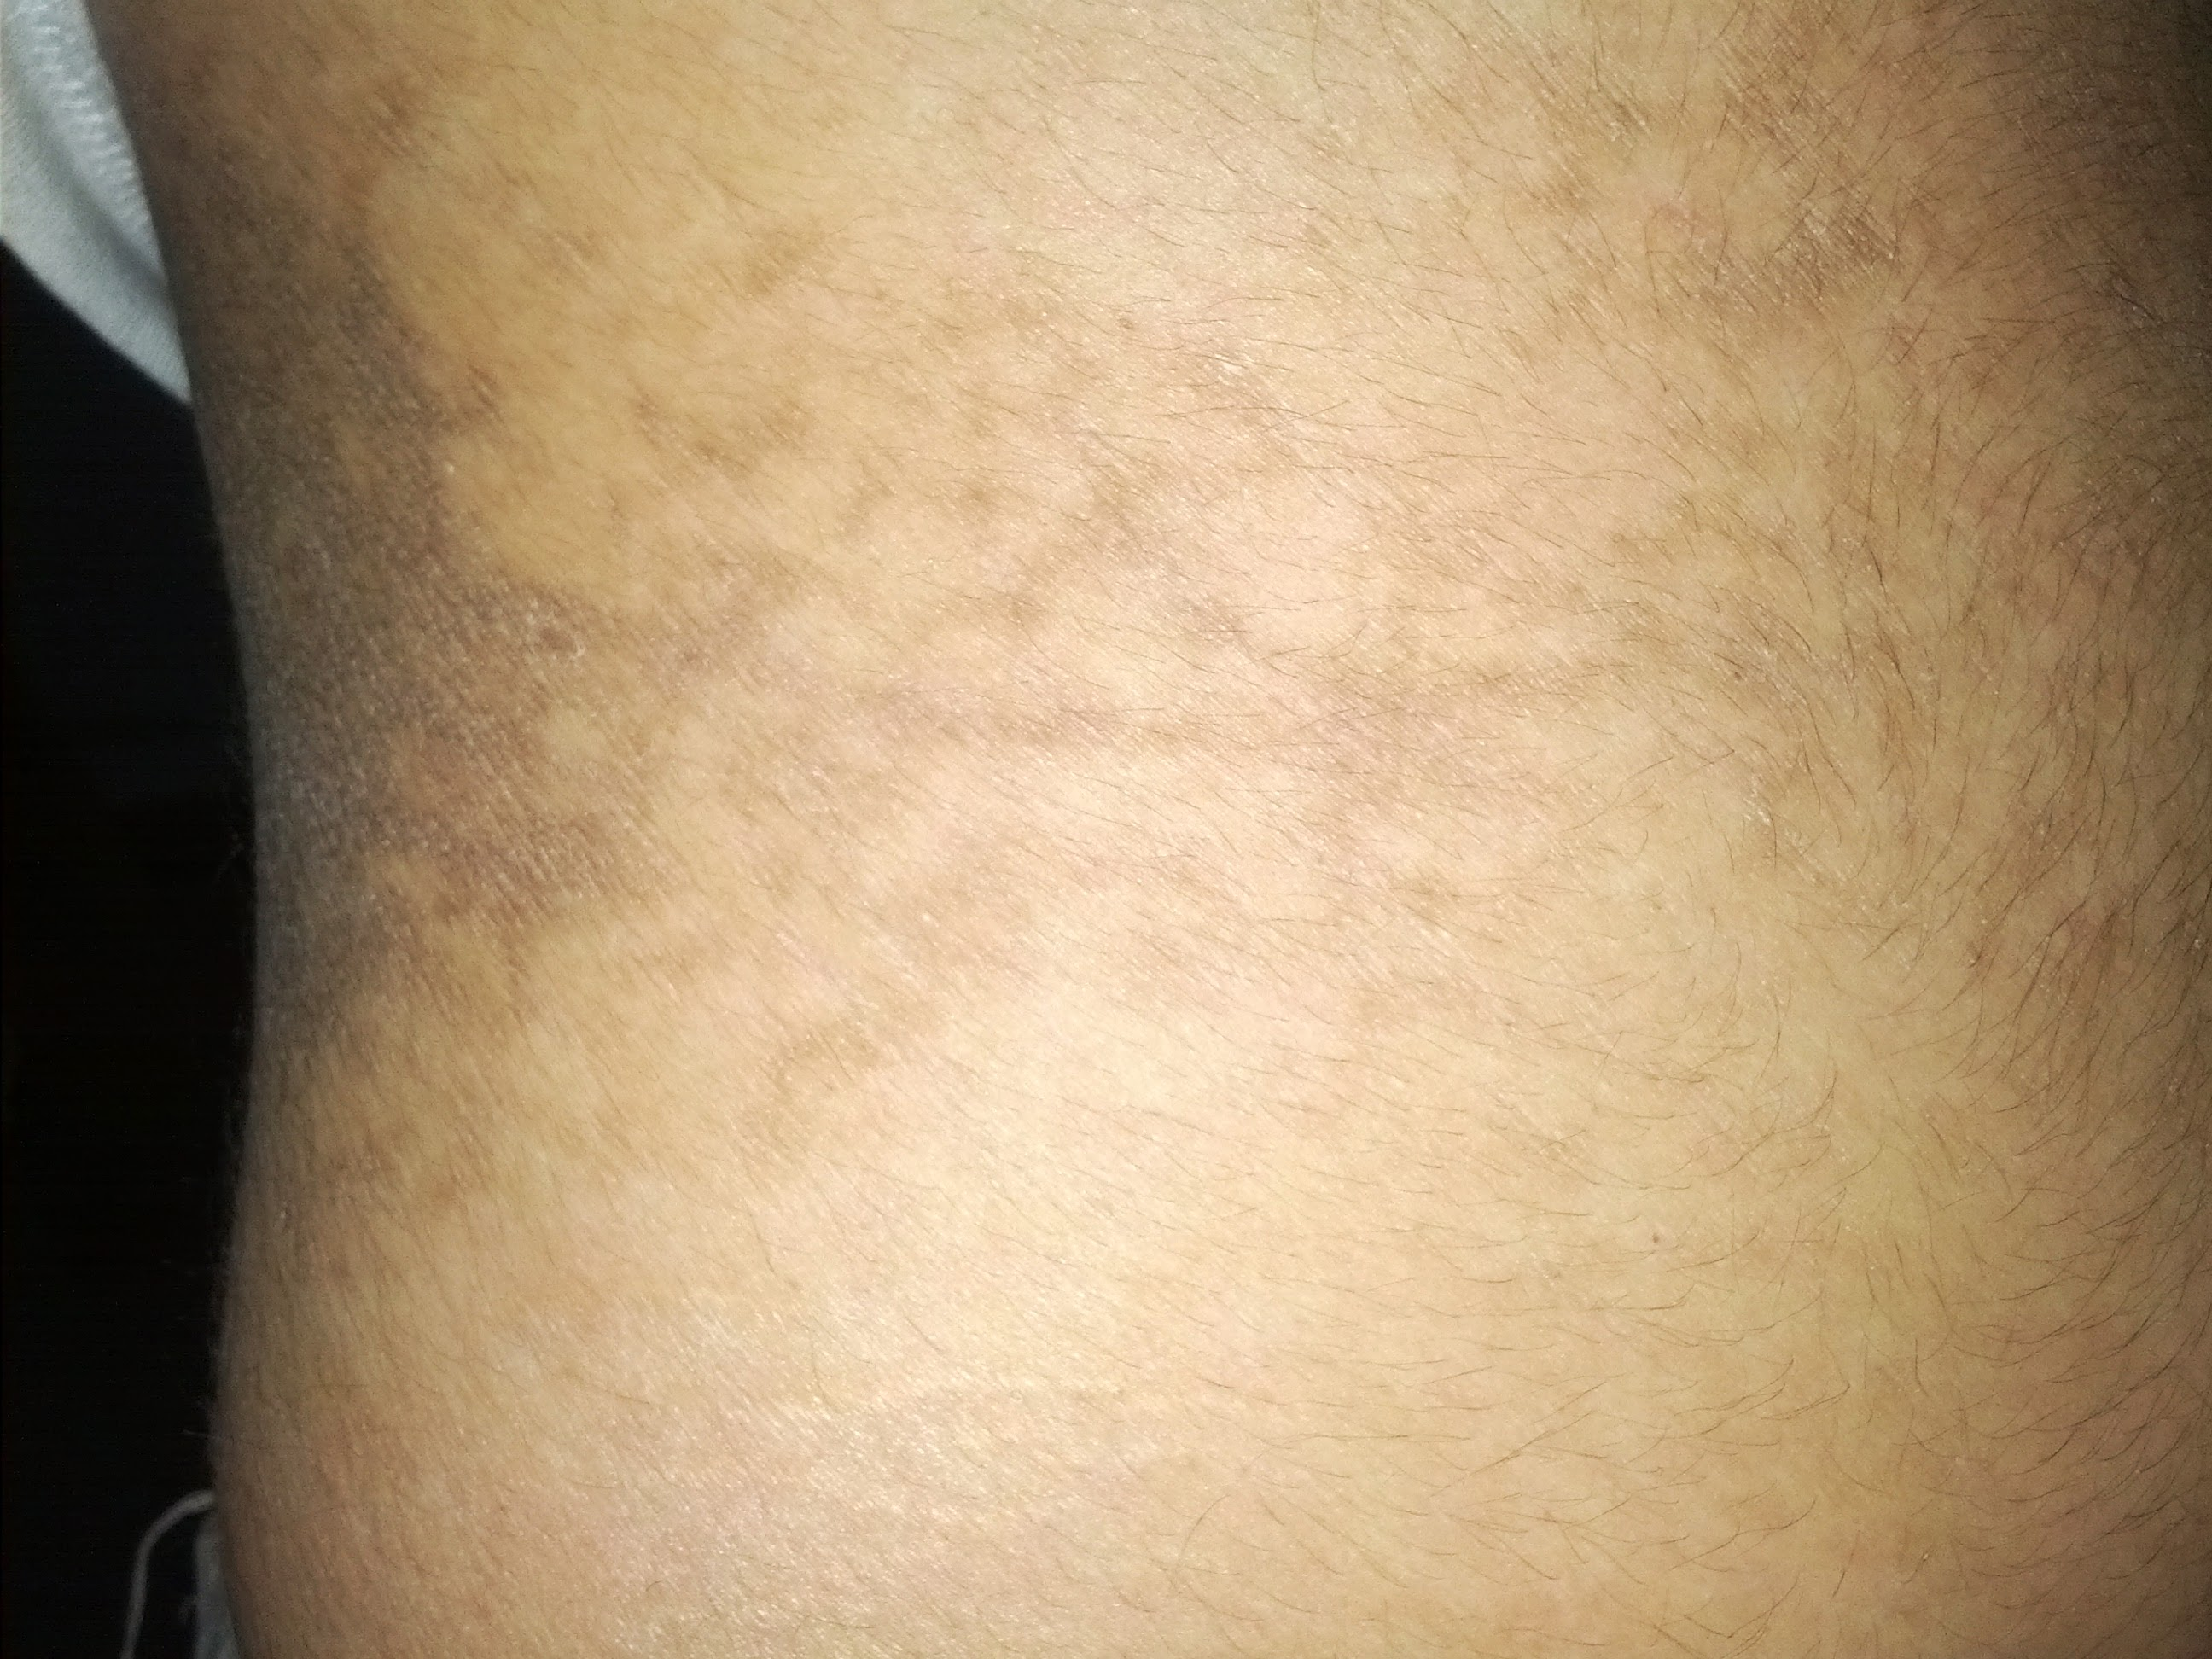 Dry Patches Of Skin On Stomach   Diydry.co